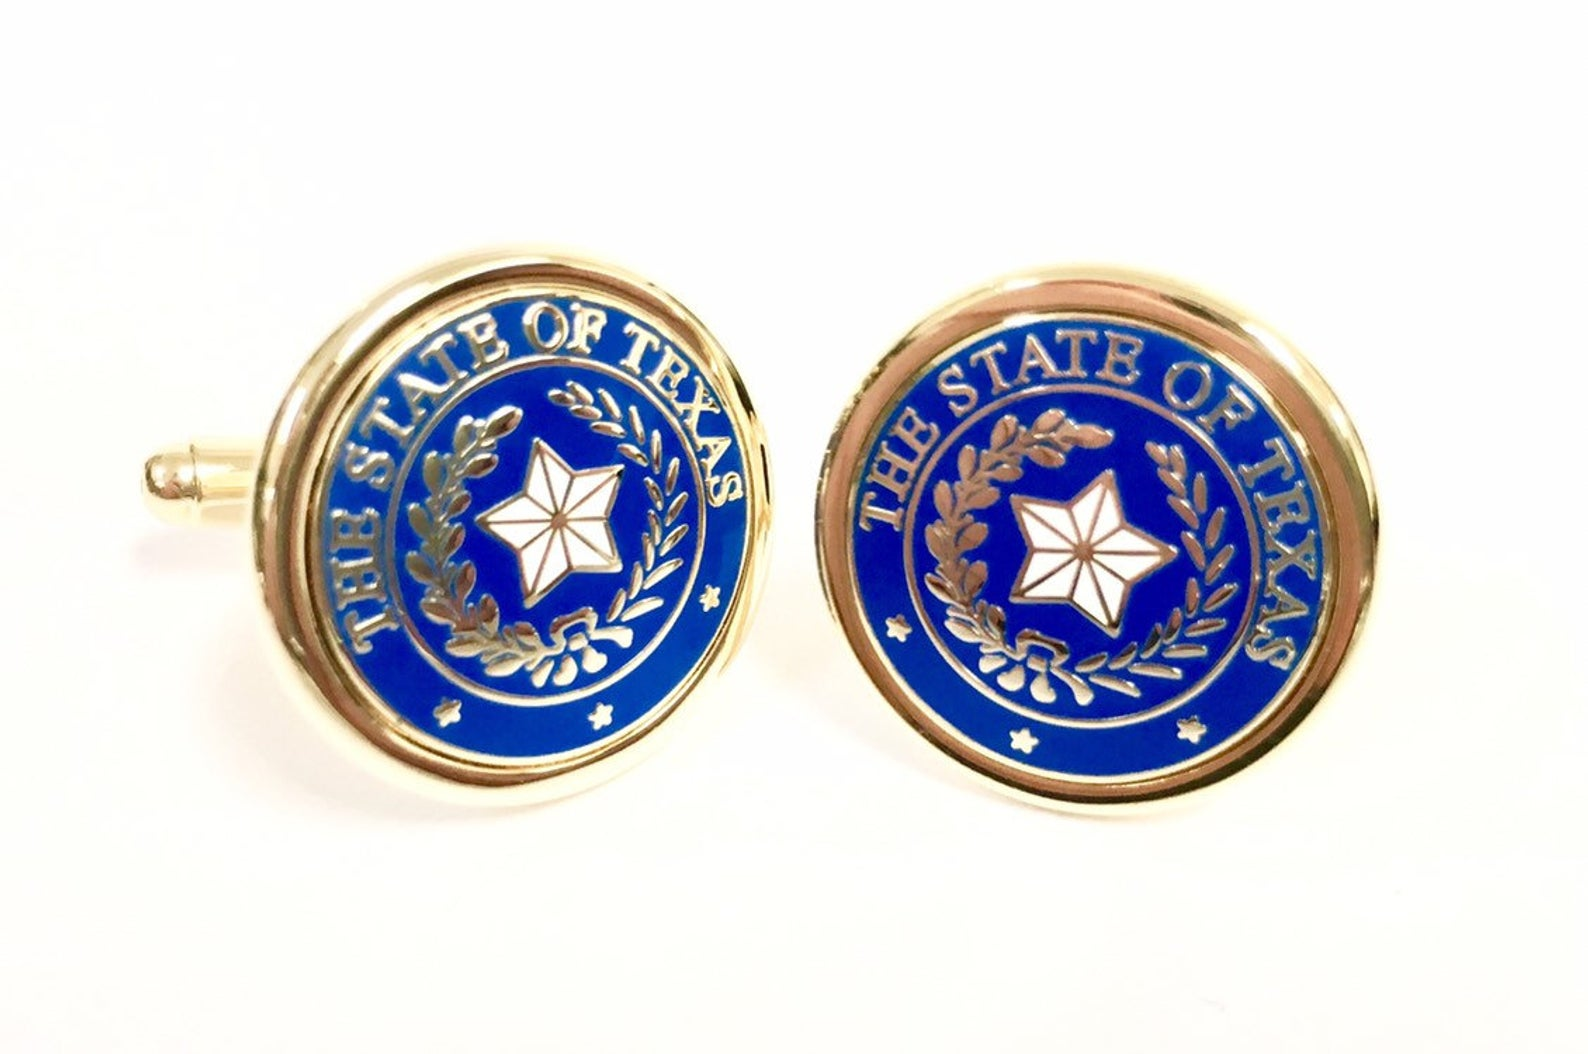 Cufflinks with the Texas State Seal - Blue & Gold